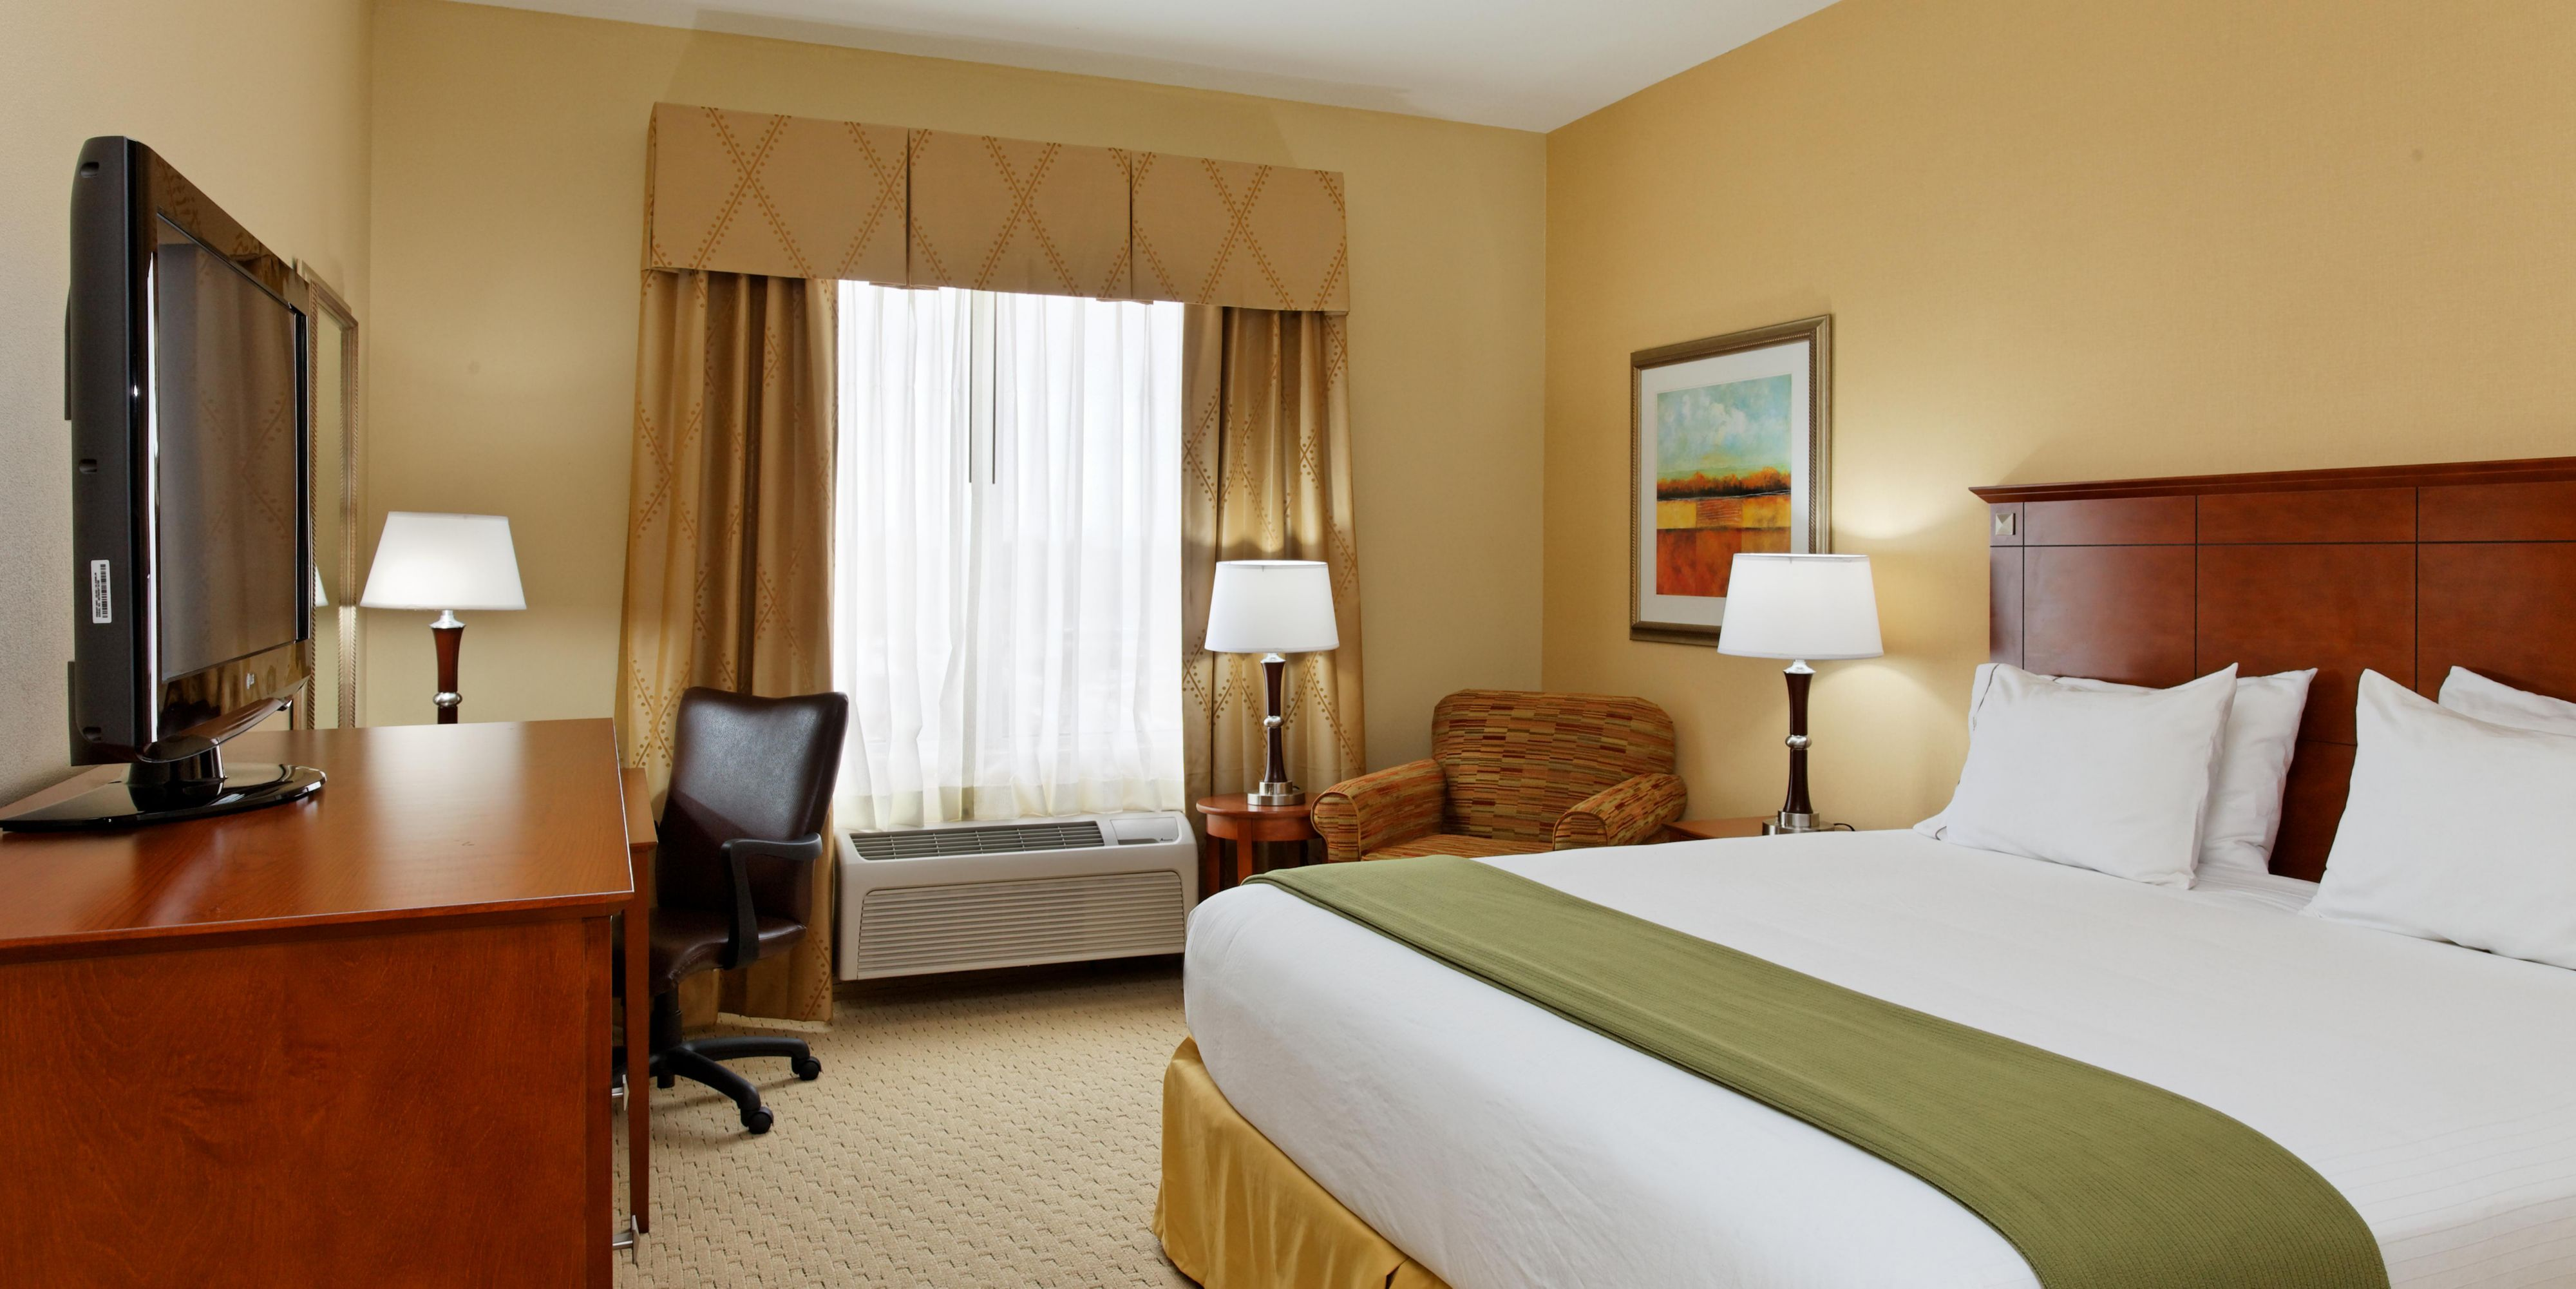 holiday beach inn comfort hoteldetail ca comforter laxlb en hotels airport long by hotel ihg us hei holidayinn